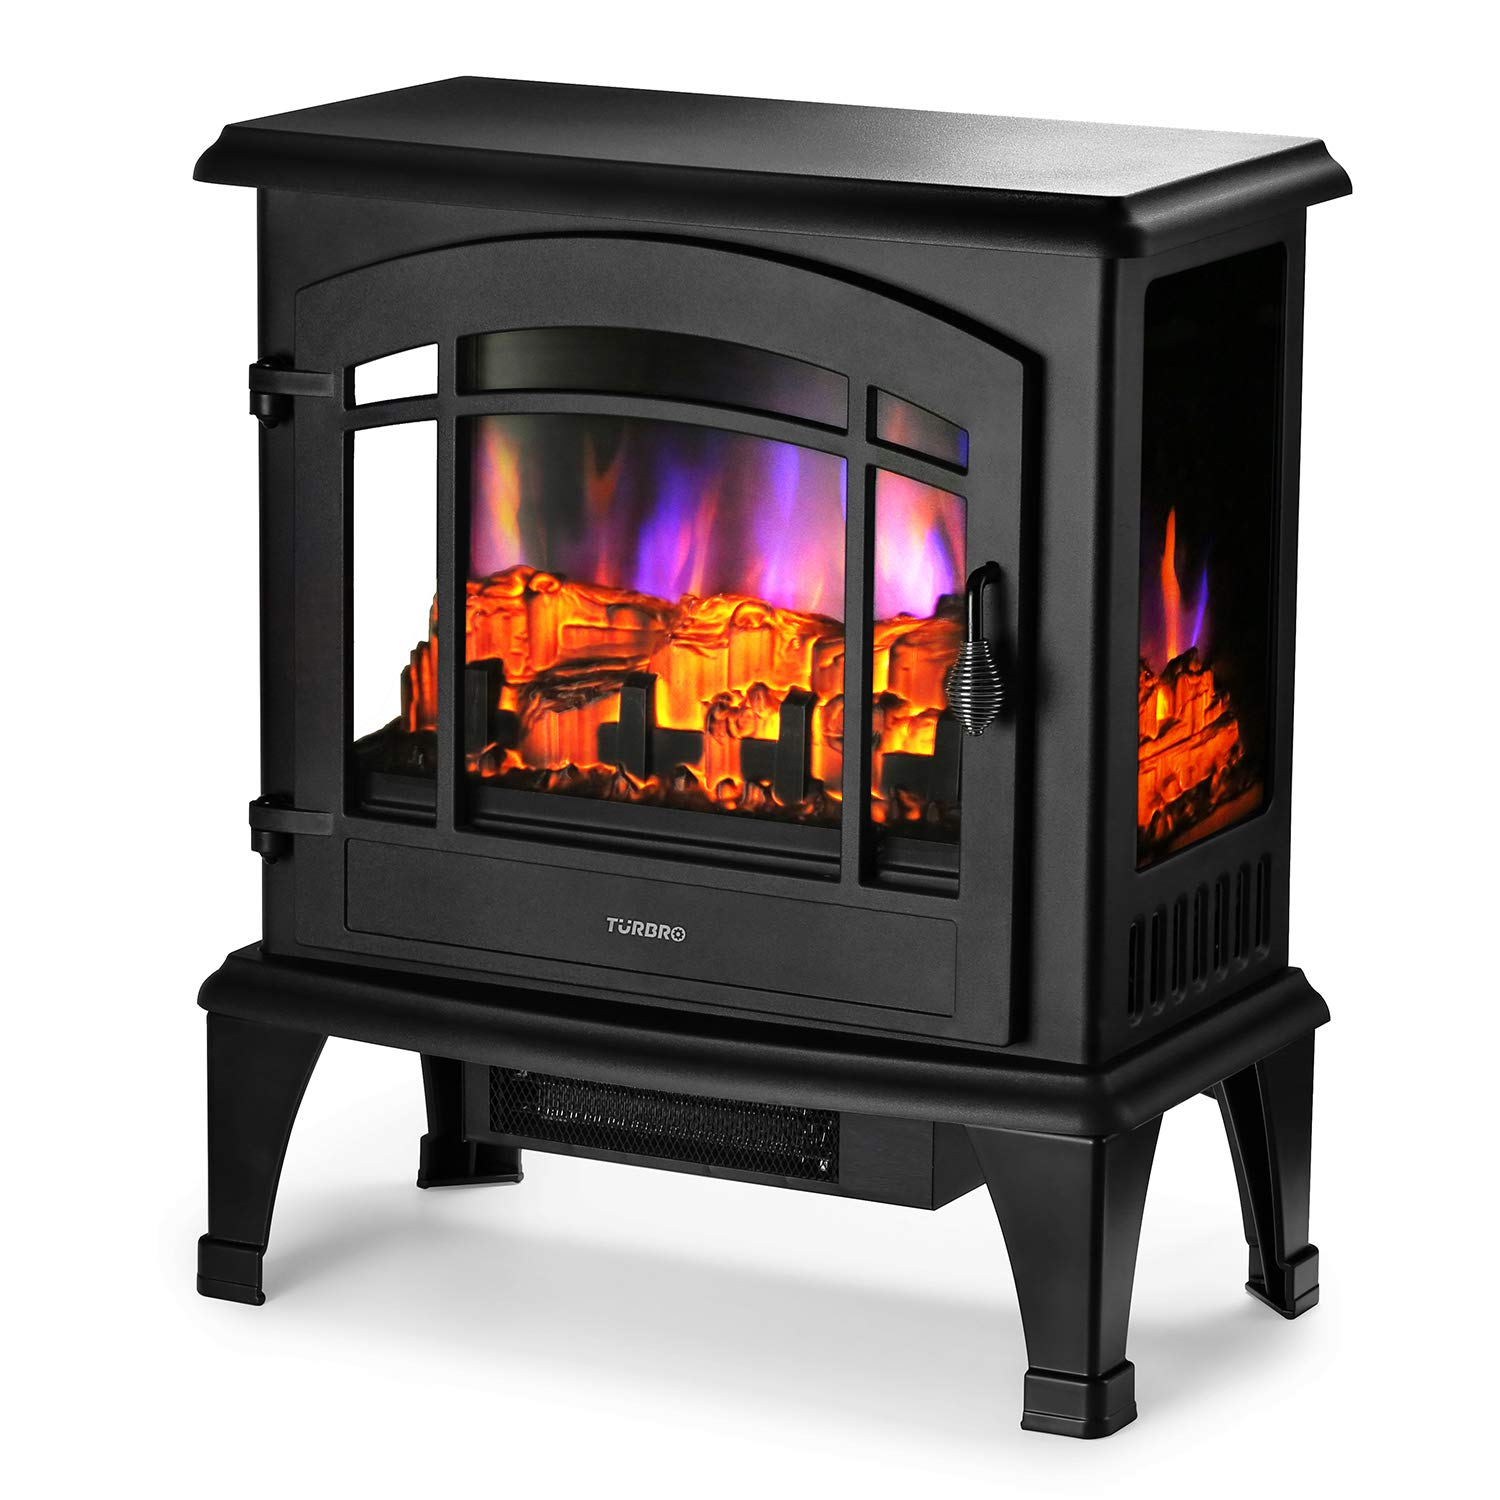 TURBRO Suburbs TS23 Freestanding Electric Fireplace Stove Heater